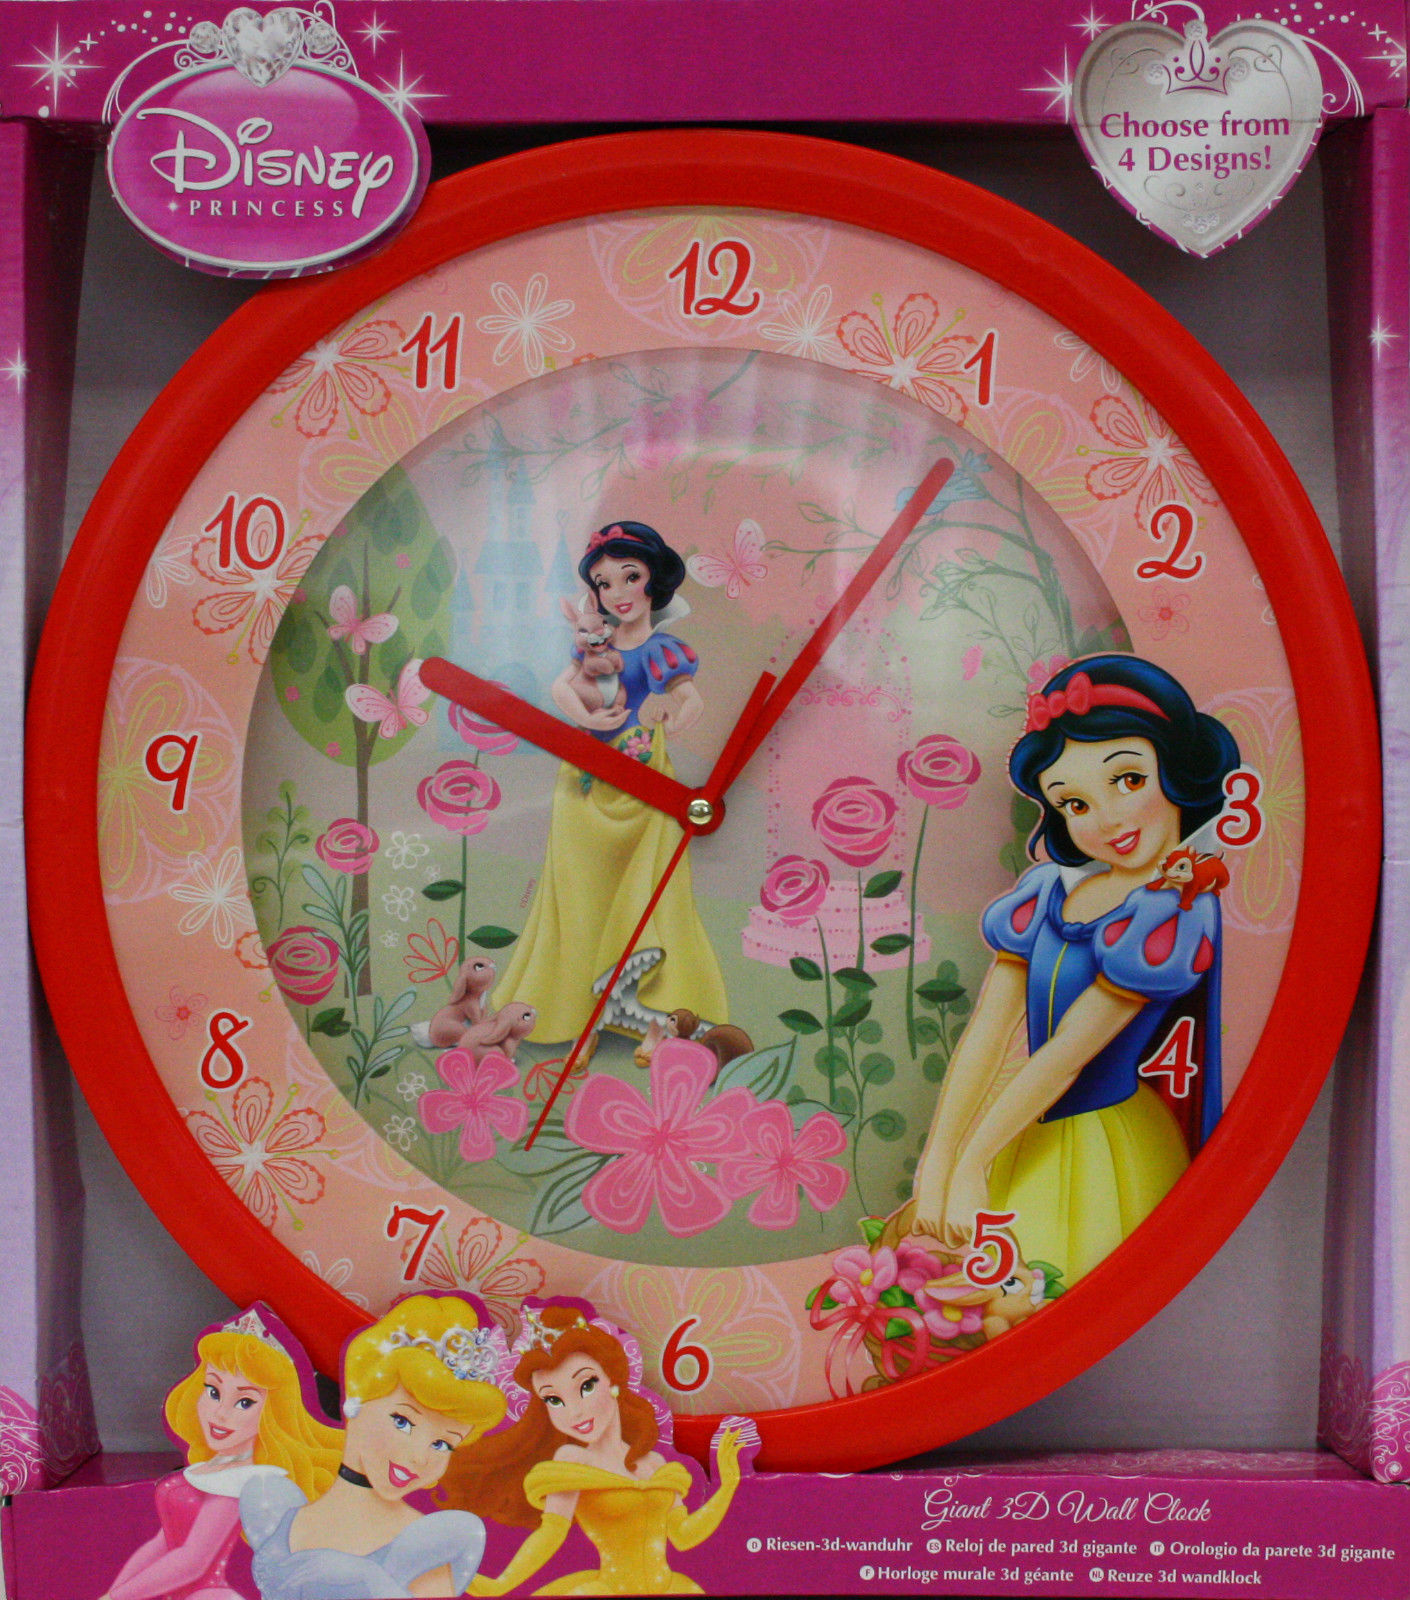 horloge murale blanche neige 3d g ante montre disney chambre. Black Bedroom Furniture Sets. Home Design Ideas